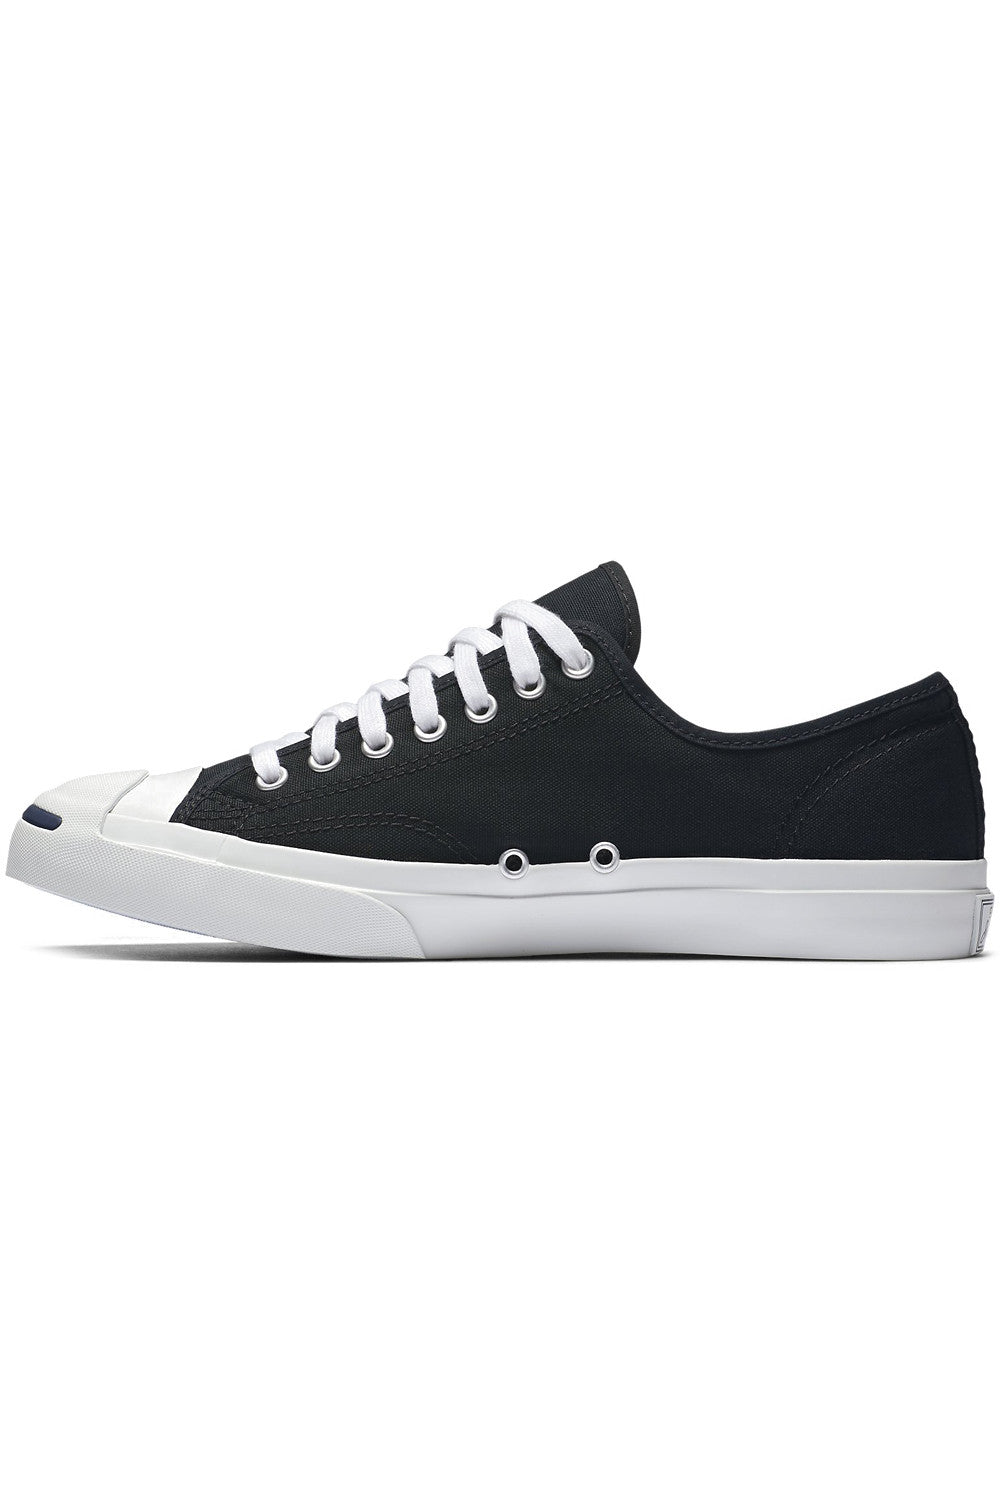 Converse Jack Purcell Classic CP OX